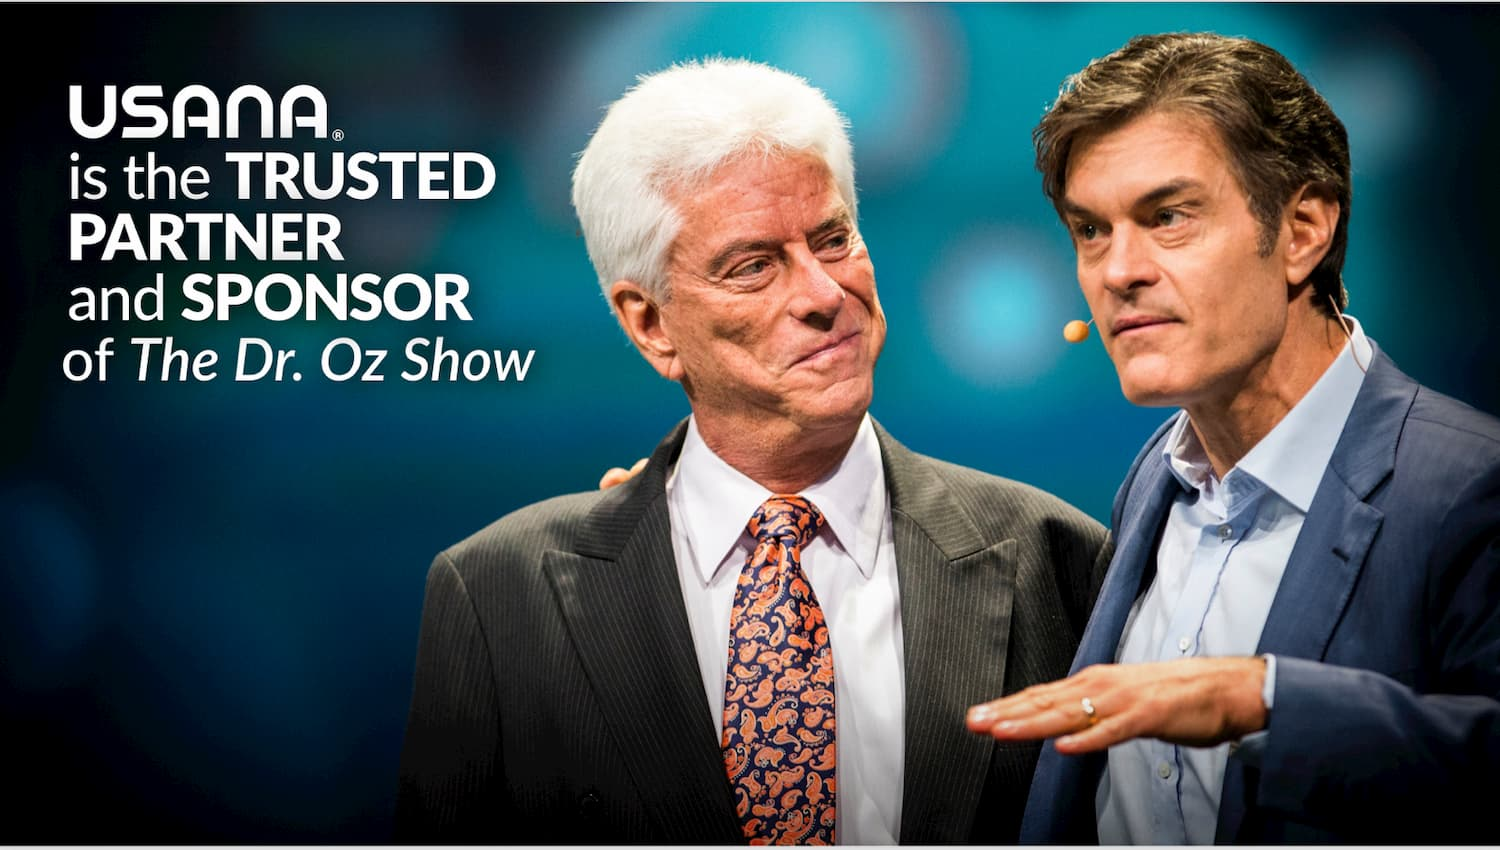 Dr Oz and a friend trusting USANA